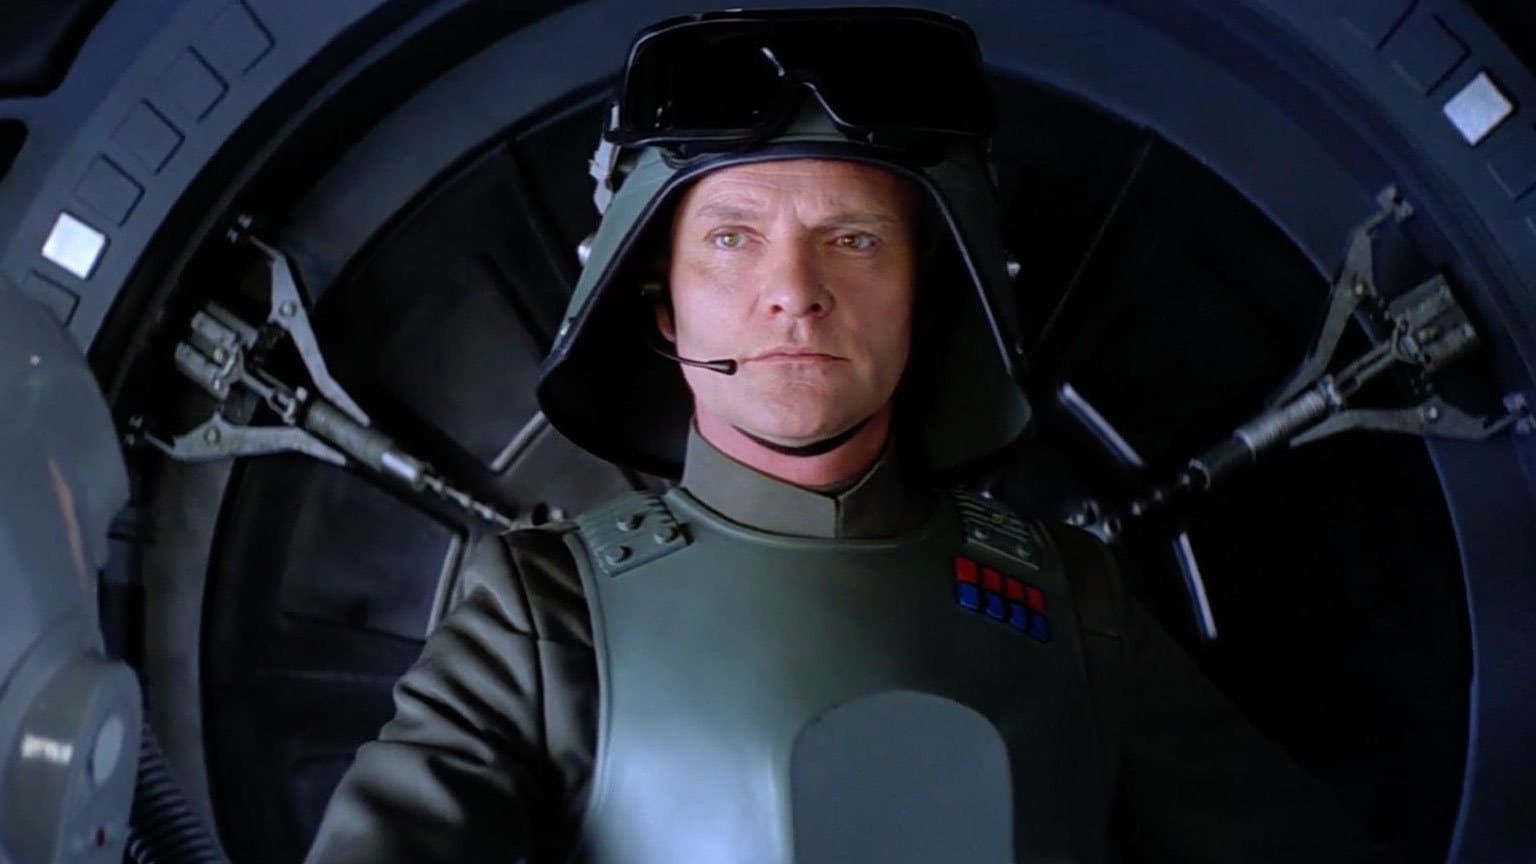 Empire at 40 | 6 Minor Star Wars: The Empire Strikes Back Characters You Should Know